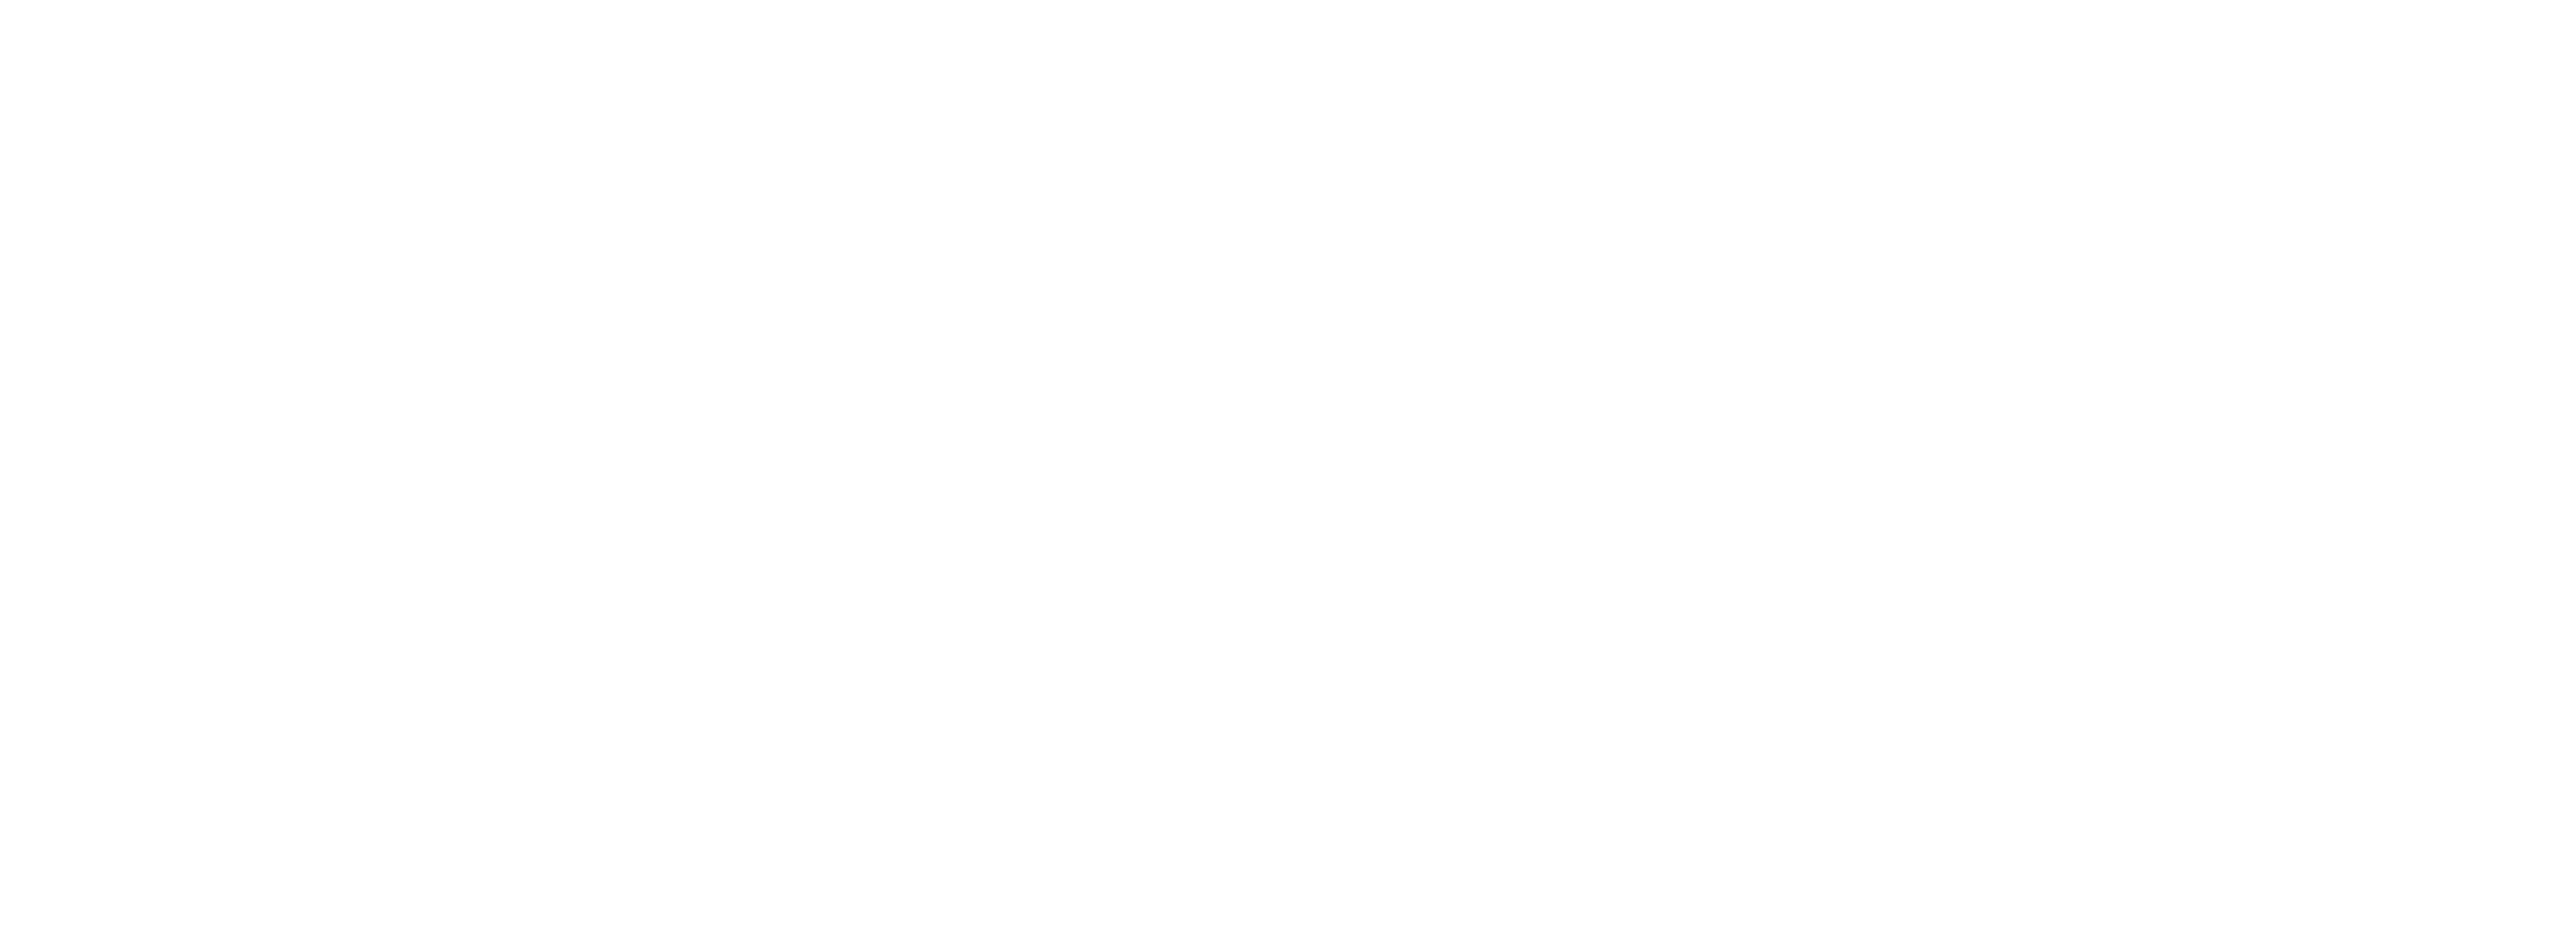 The Falcon, Rotherwick